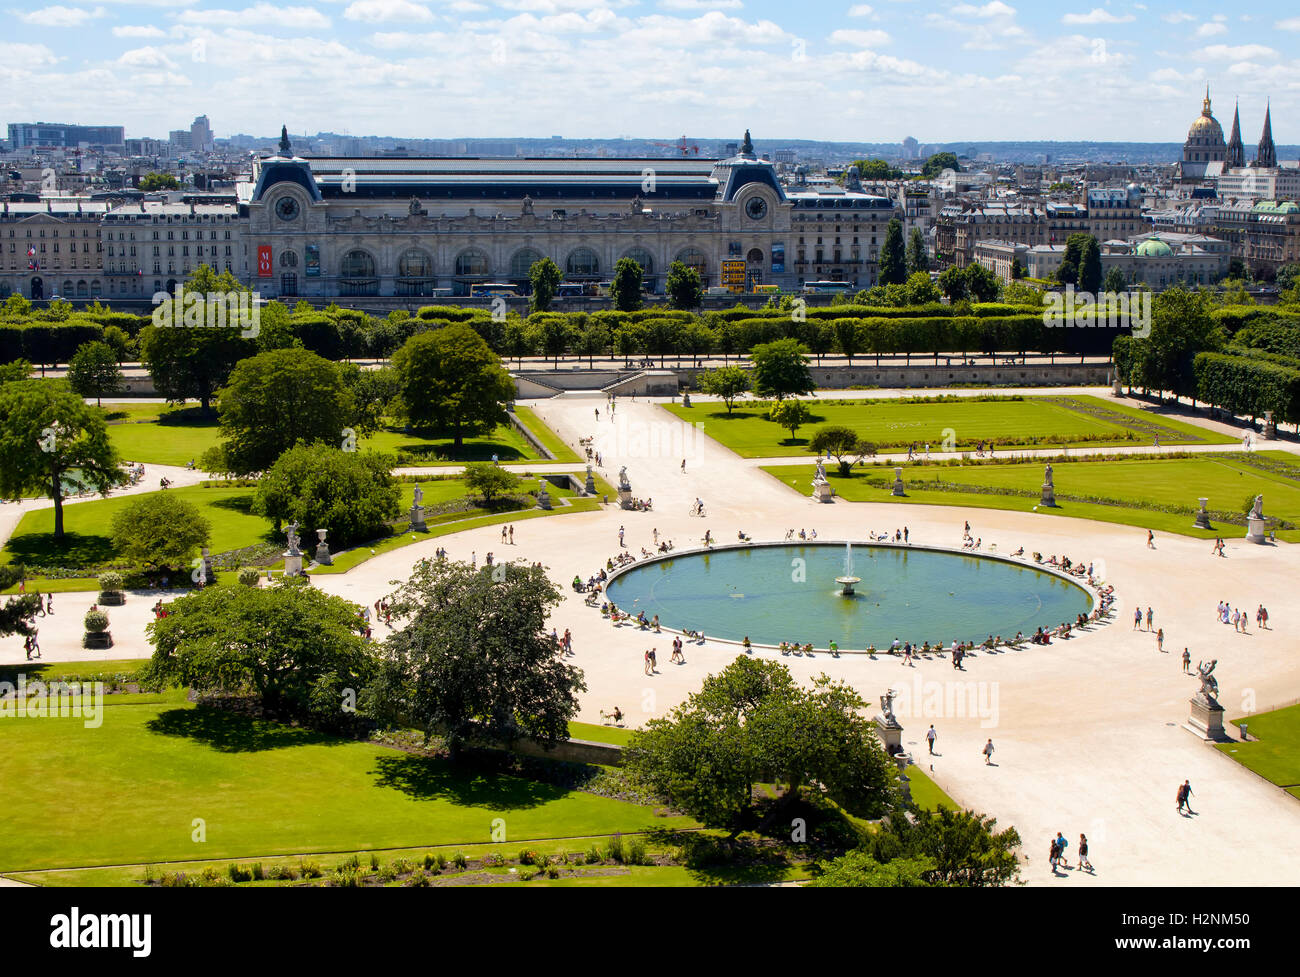 aerial view of jardin des tuileries and orangerie museum in paris stock photo 122178700 alamy. Black Bedroom Furniture Sets. Home Design Ideas